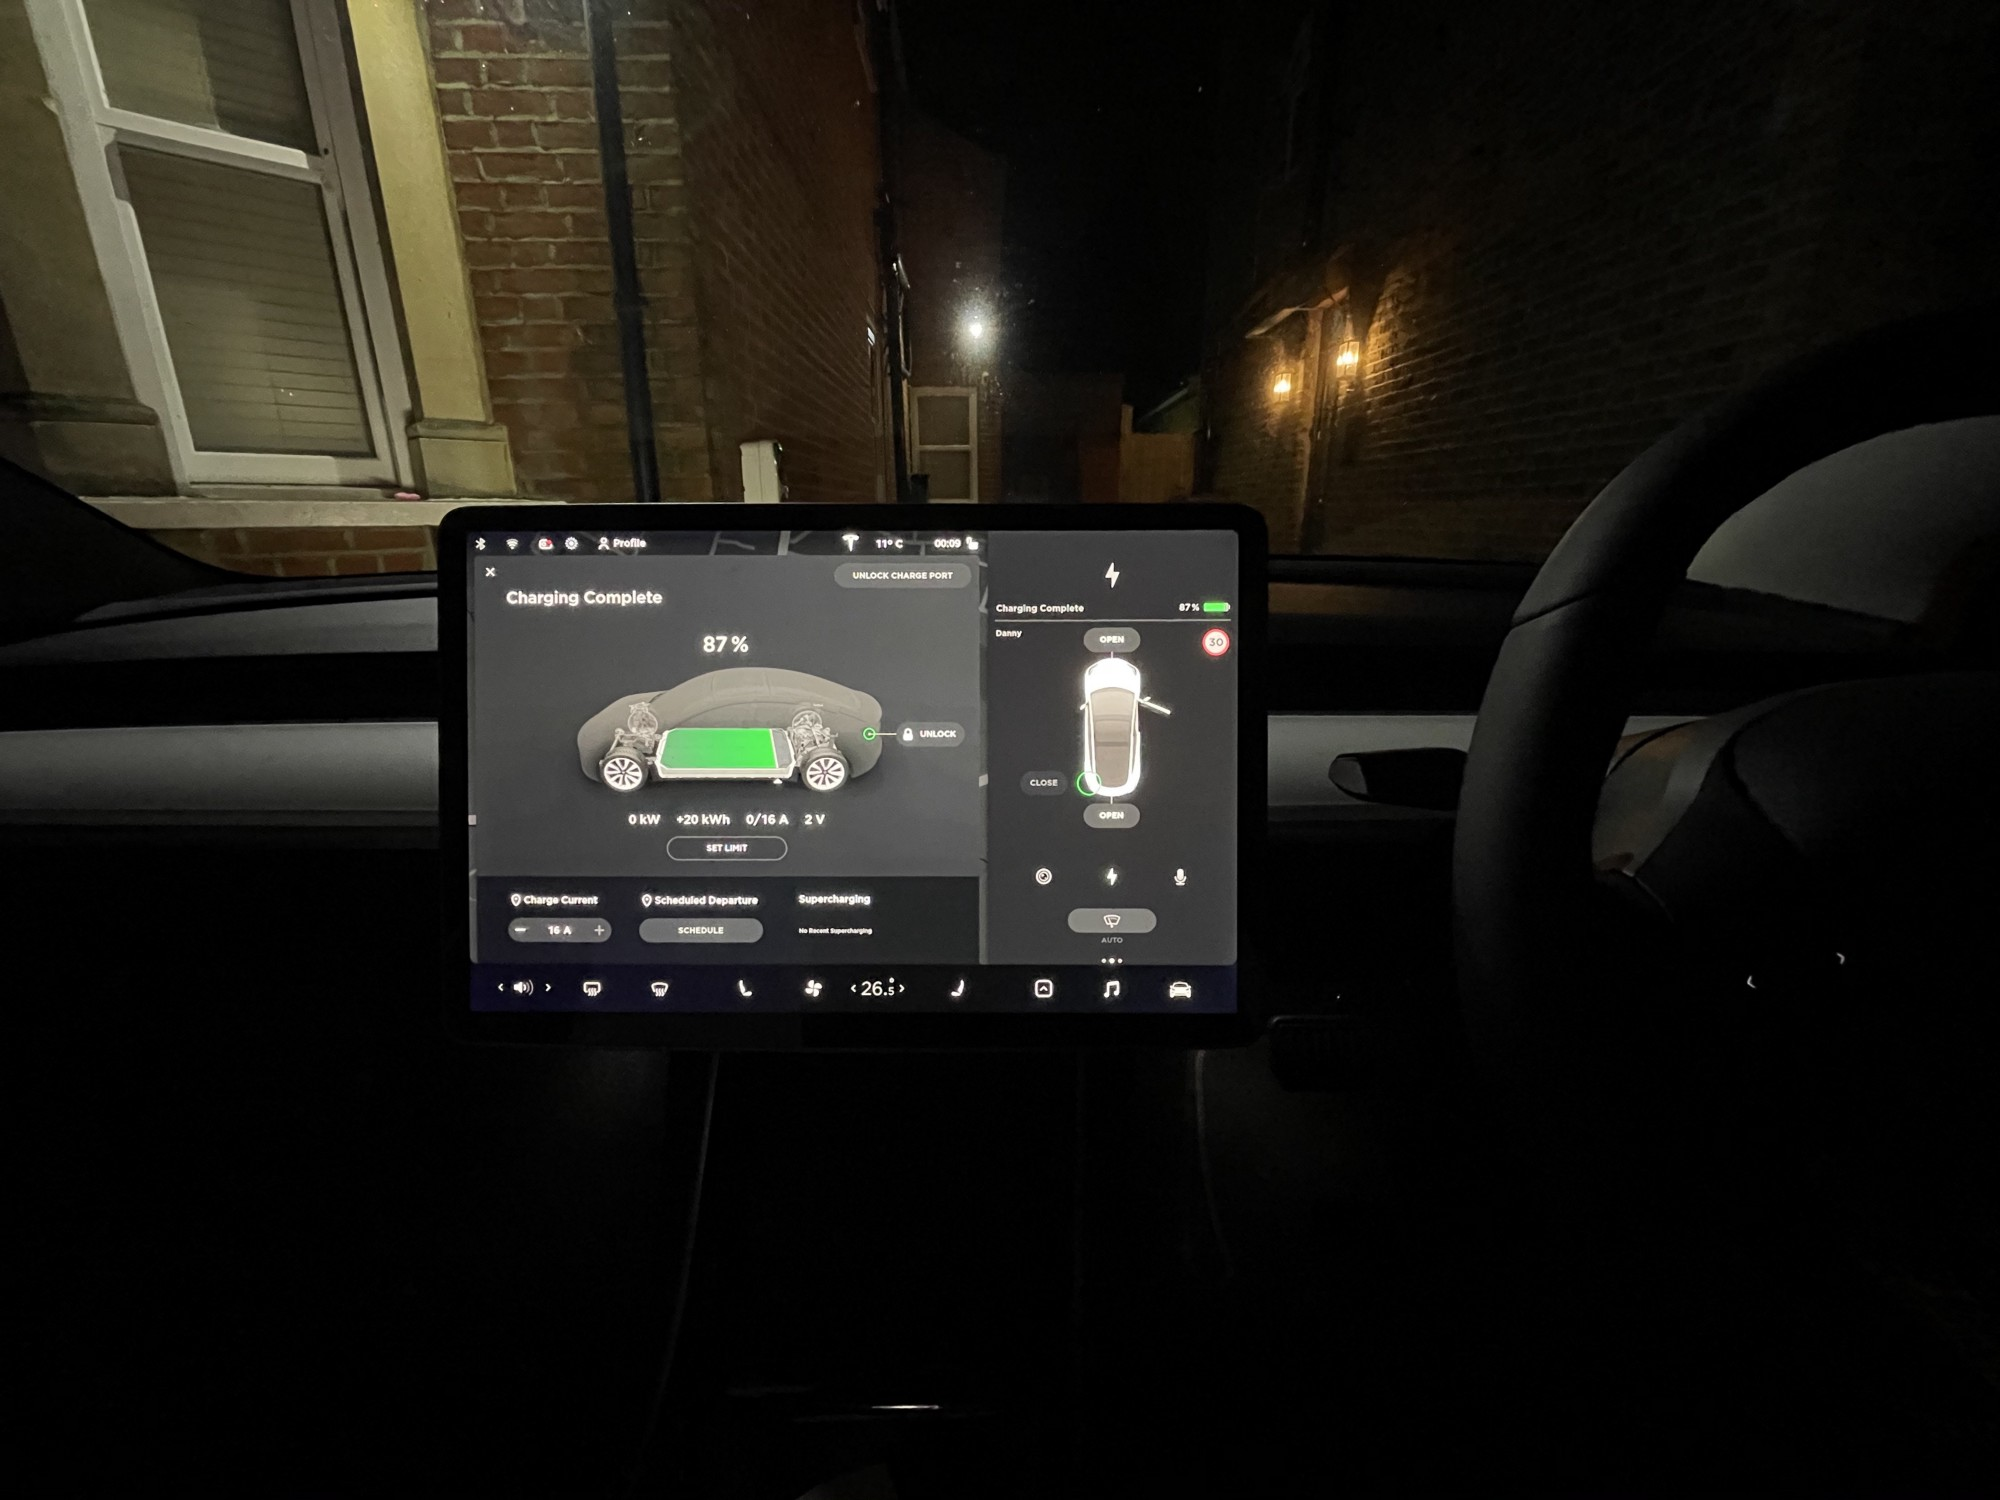 Photo of the Model 3 infotainment system at night with a house behind it